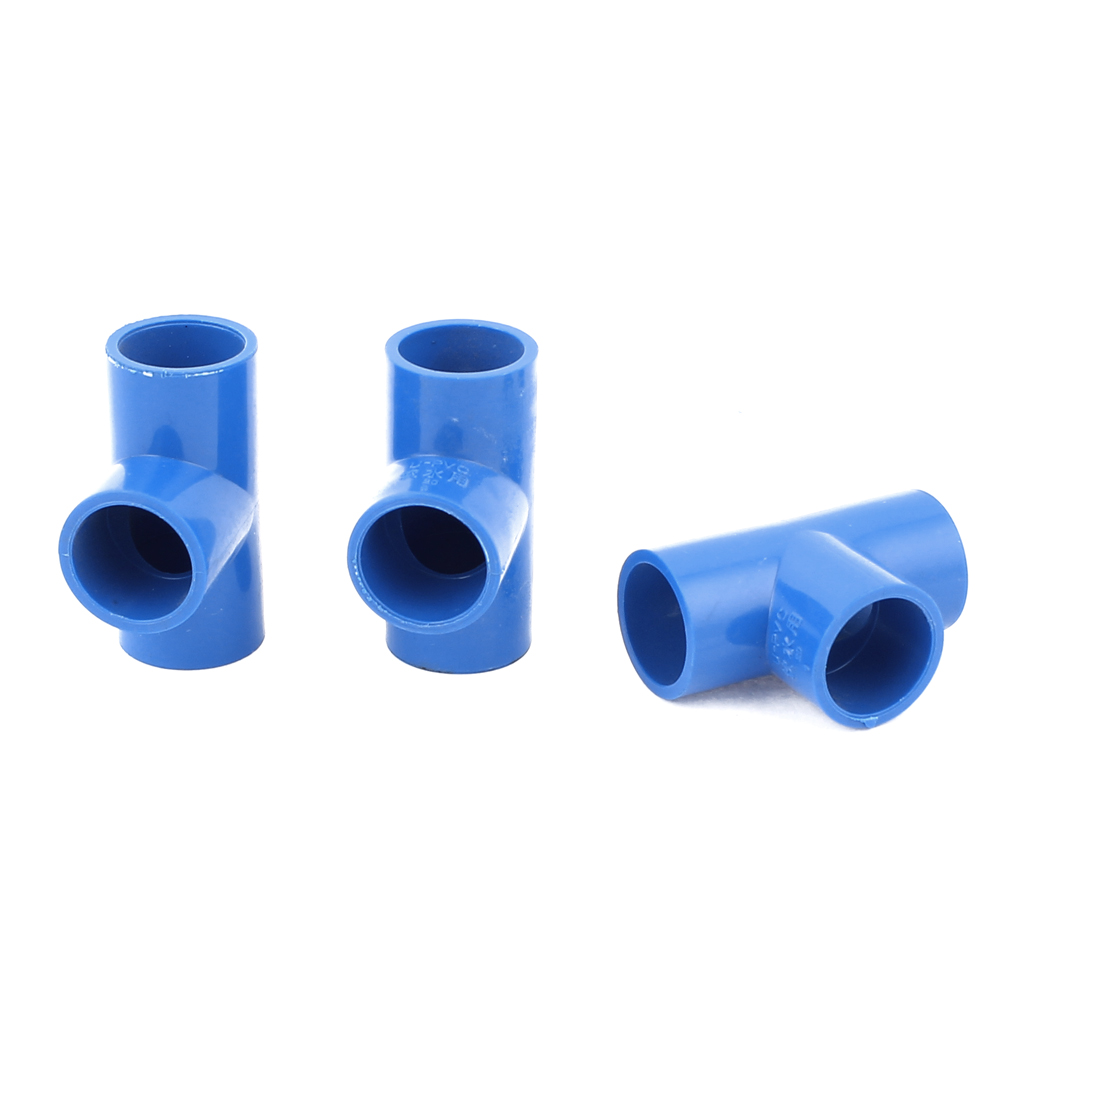 3Pcs 20mm Inner Dia U-PVC T Type 3 Way Water Pipe Hose Joint Connector Blue